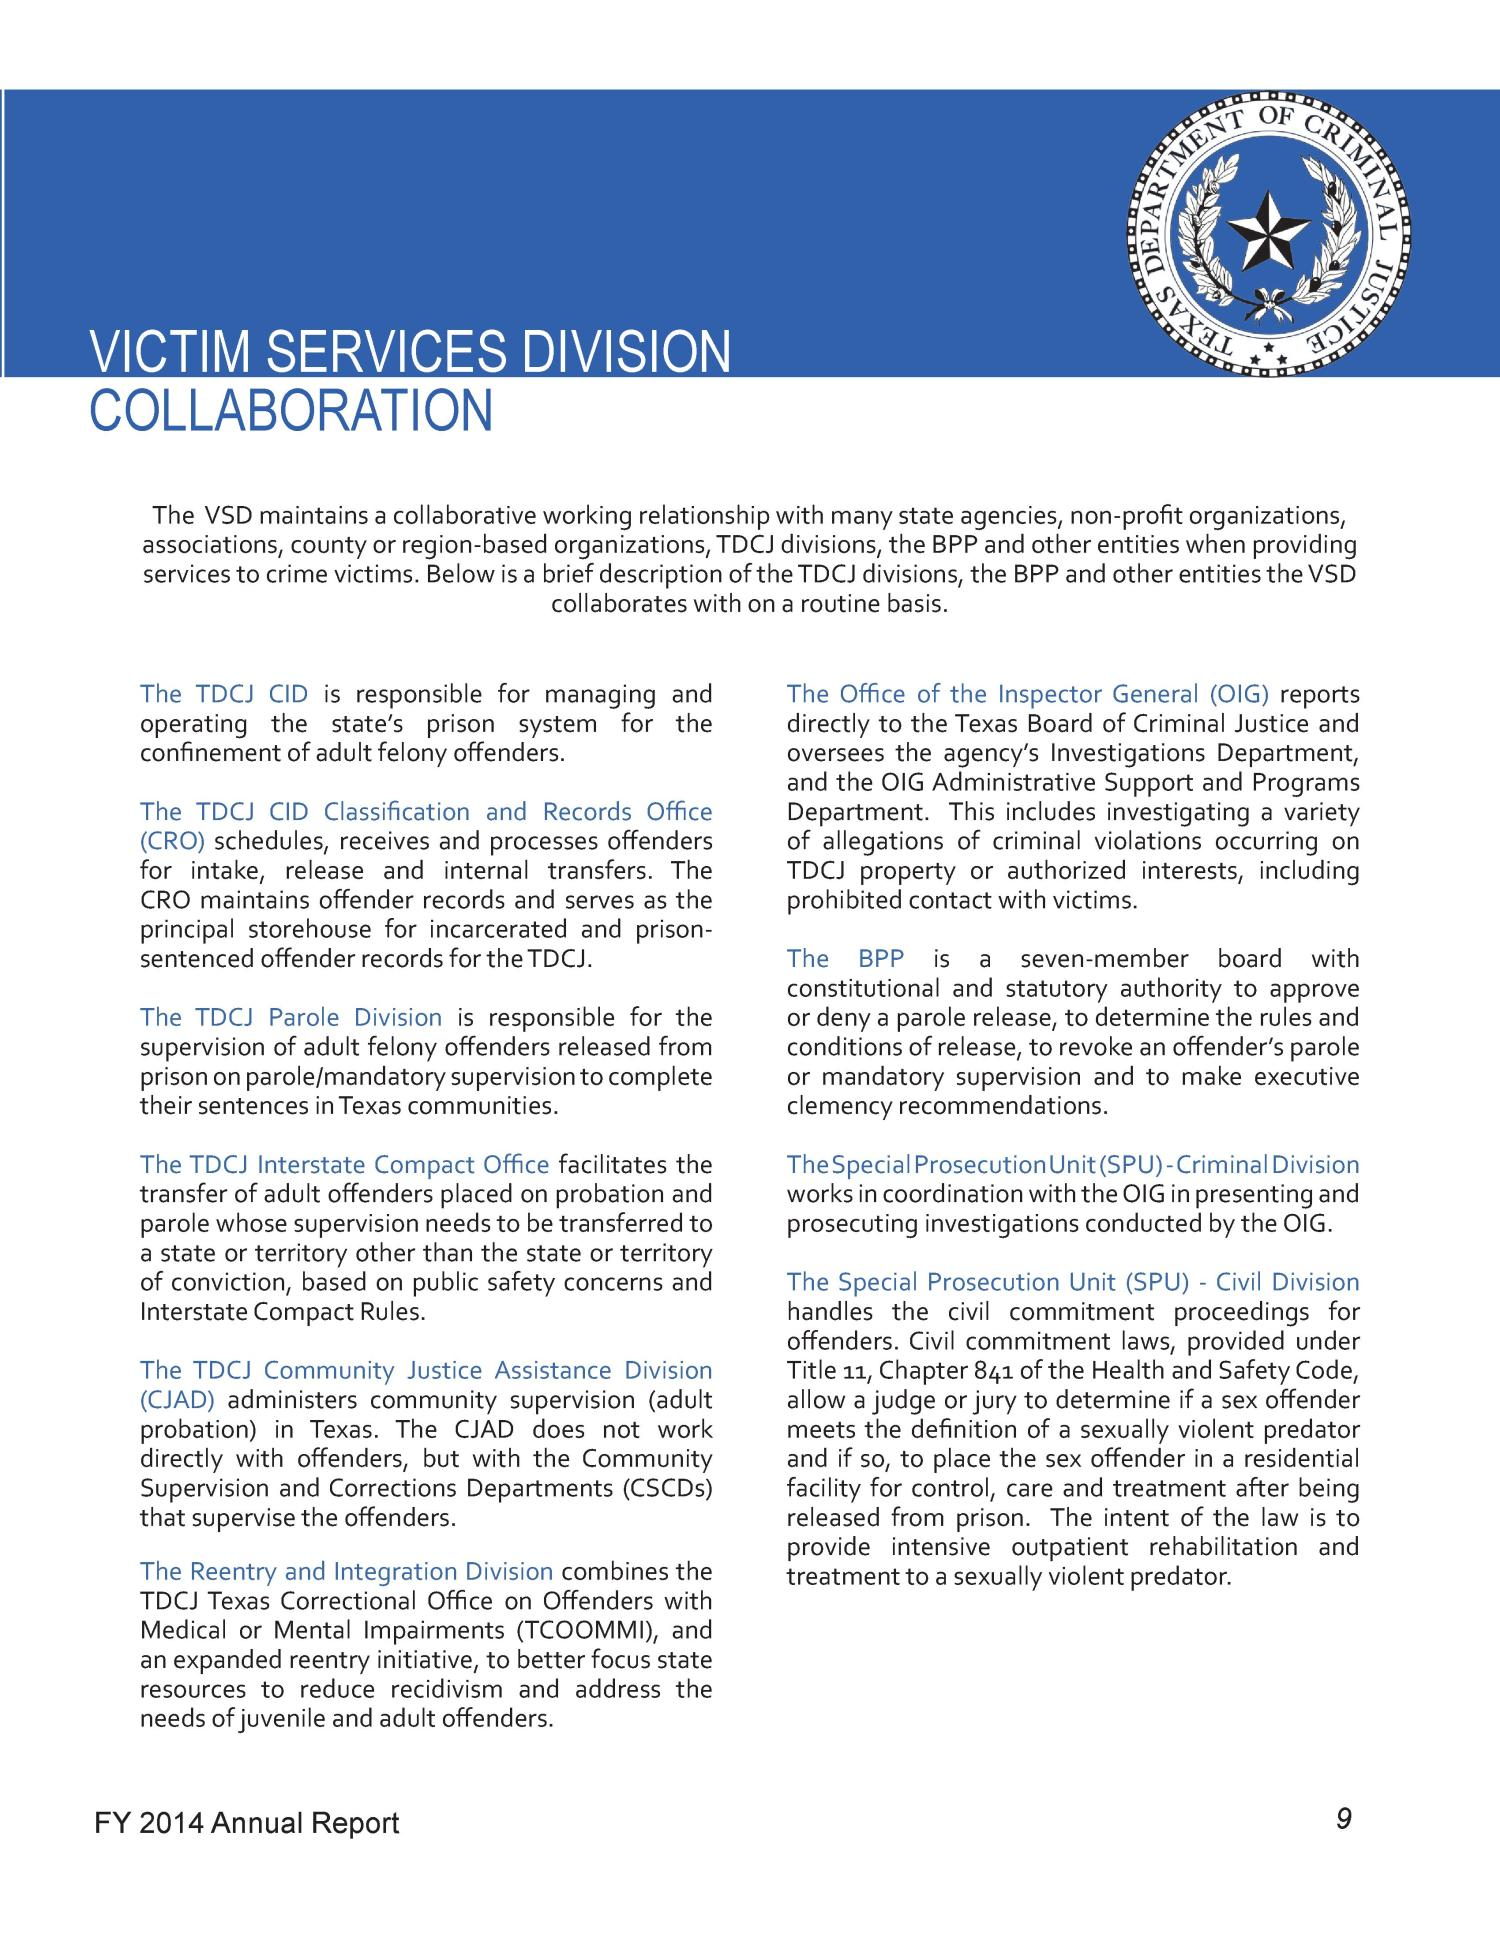 TDCJ Victim Services Division Fiscal Year 2014 Annual Report